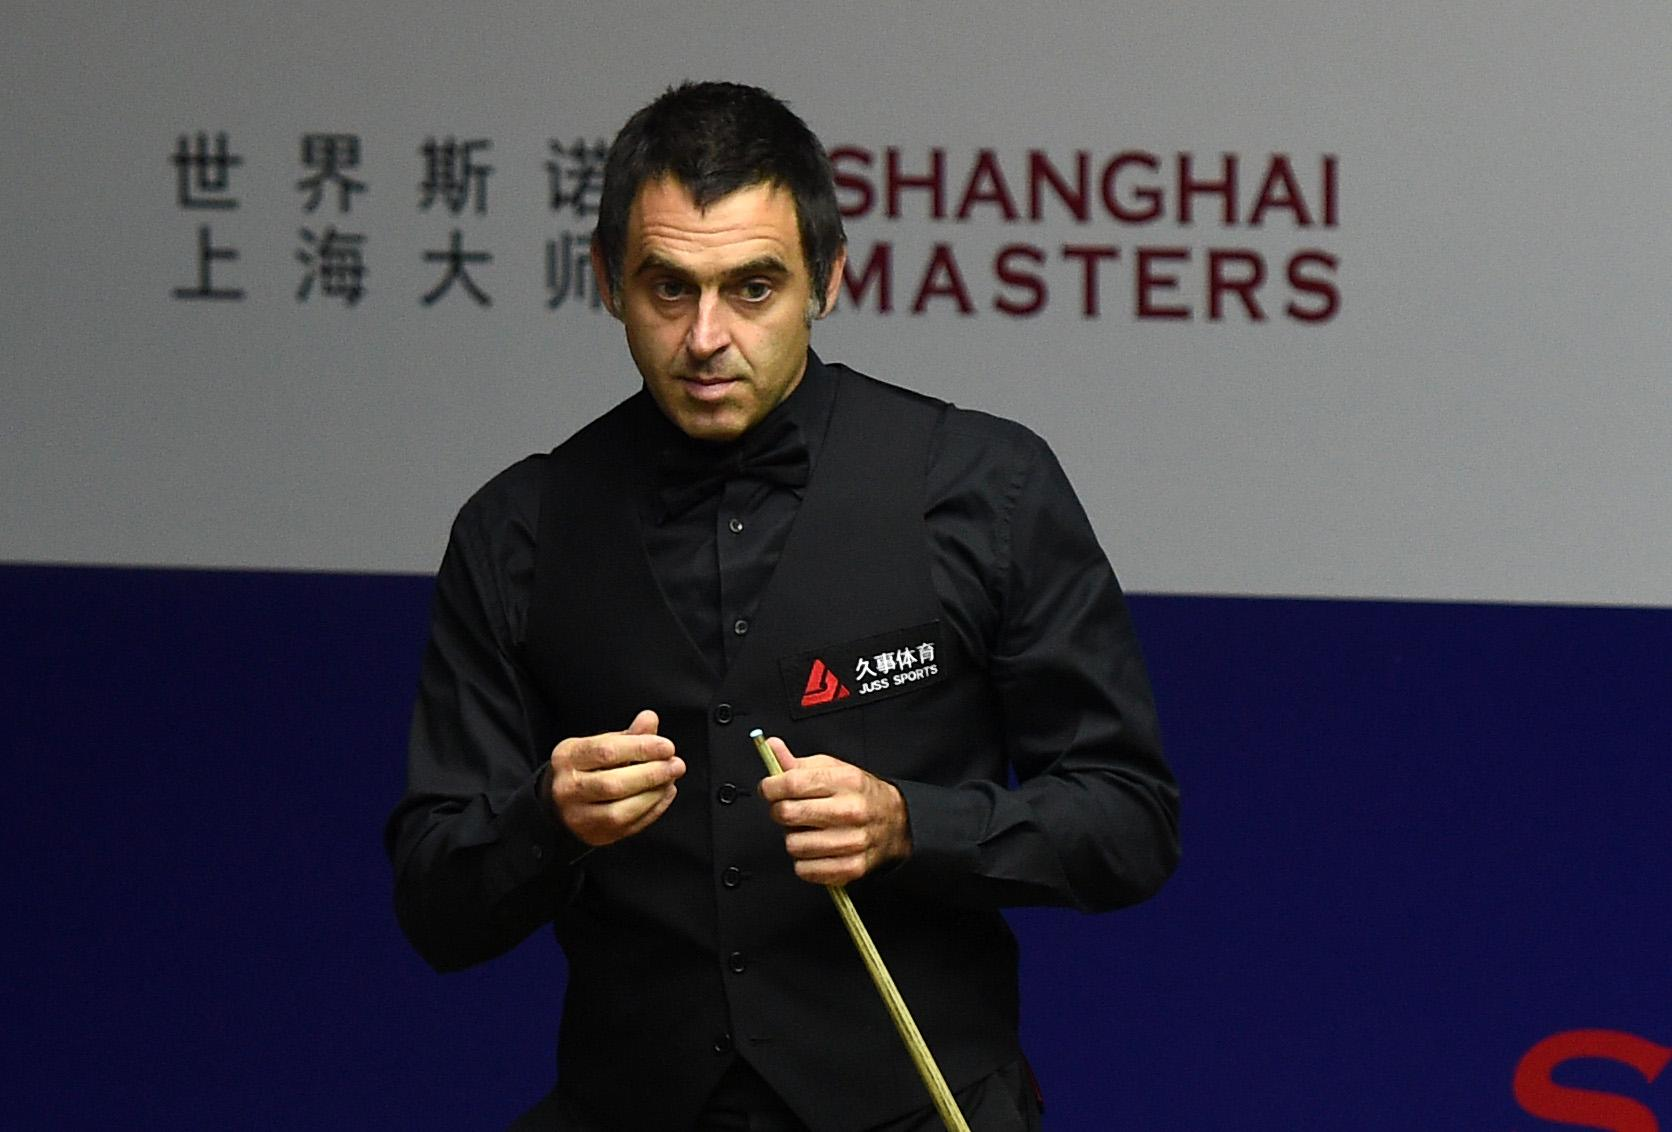 Ronnie had no problem with a female official during his win over Kyren Wilson, but considered a different approach after seeing Serena in action